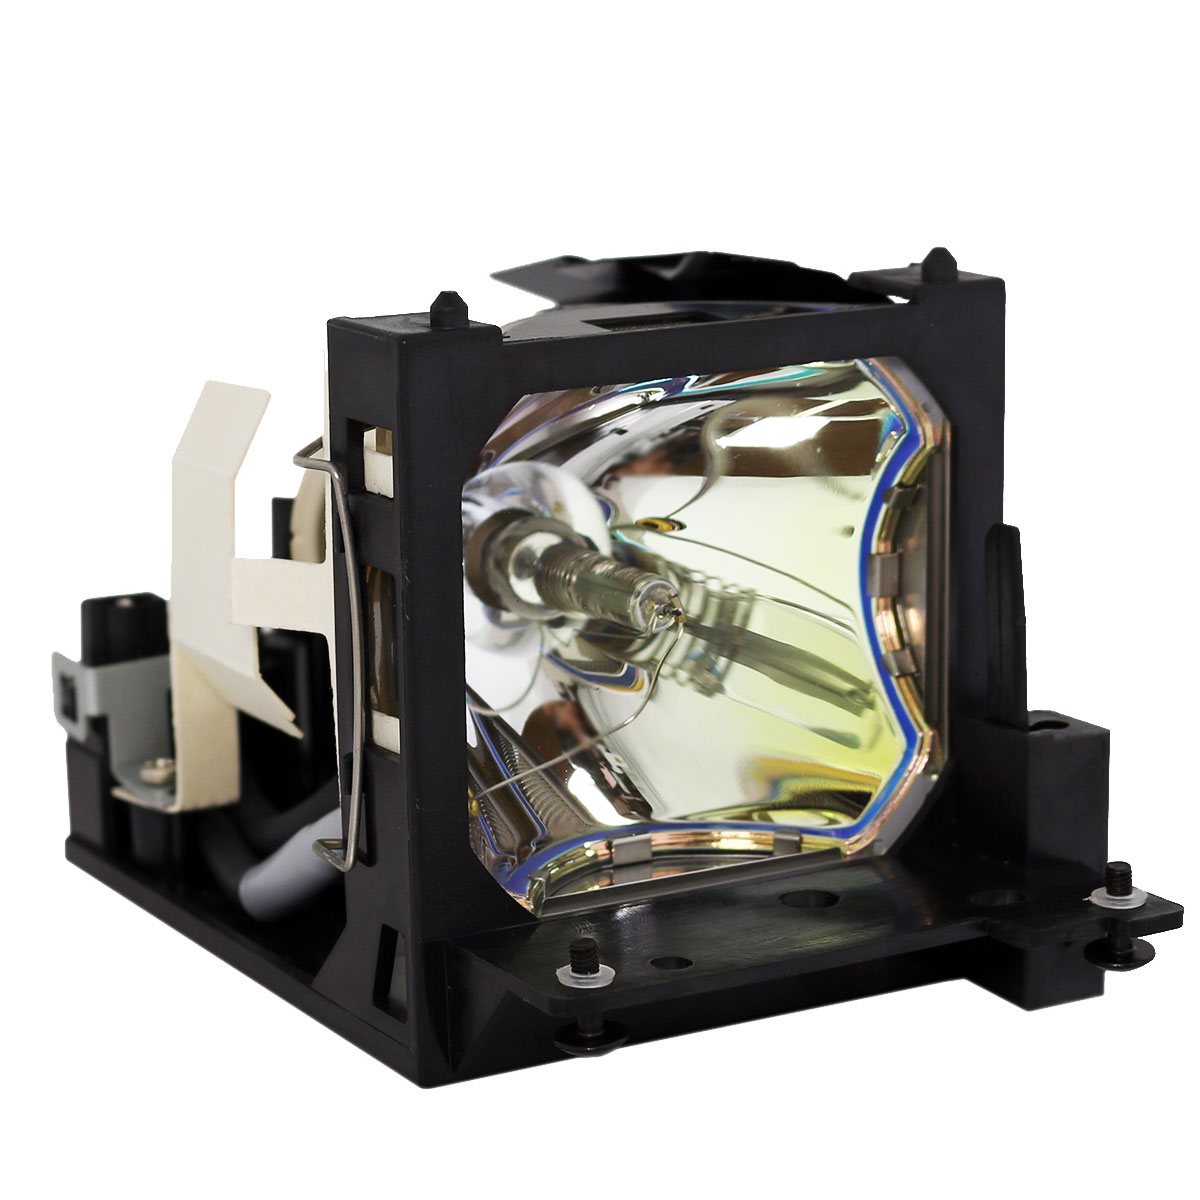 Original Ushio Projector Lamp Replacement for Hitachi MVP-X13 (Bulb Only) - image 3 of 5